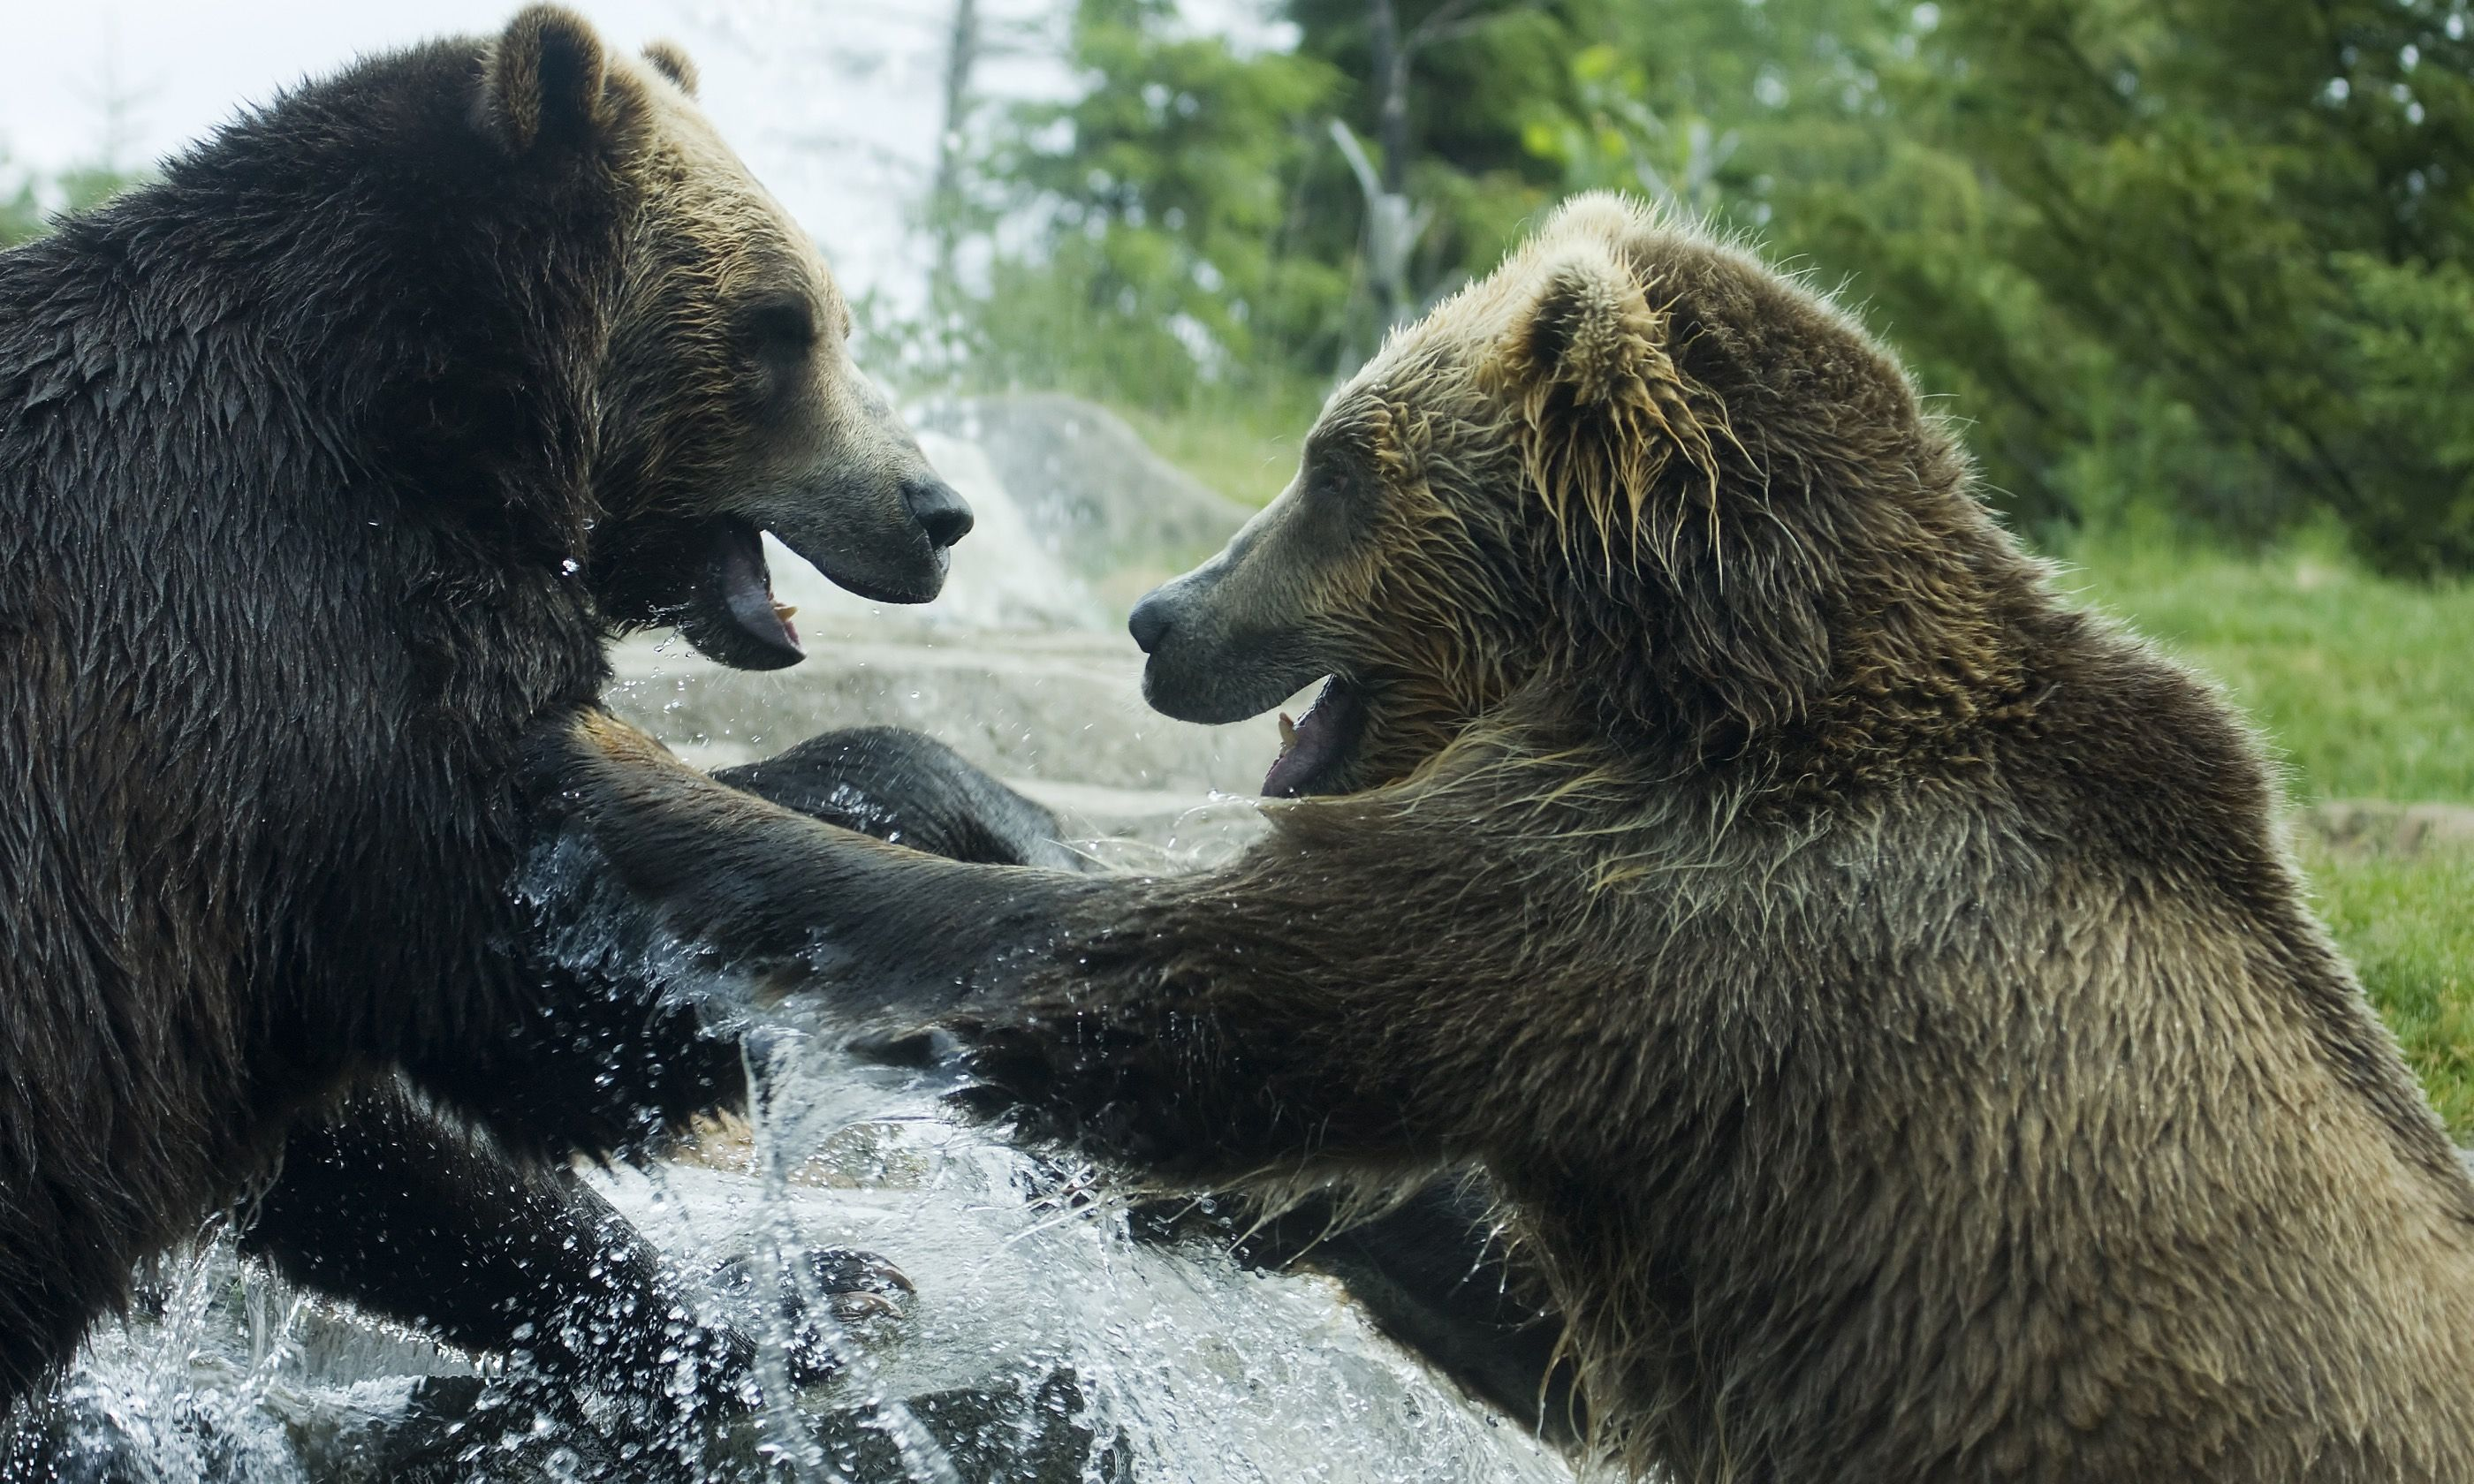 Bears wrestling playfully (Dreamstime)